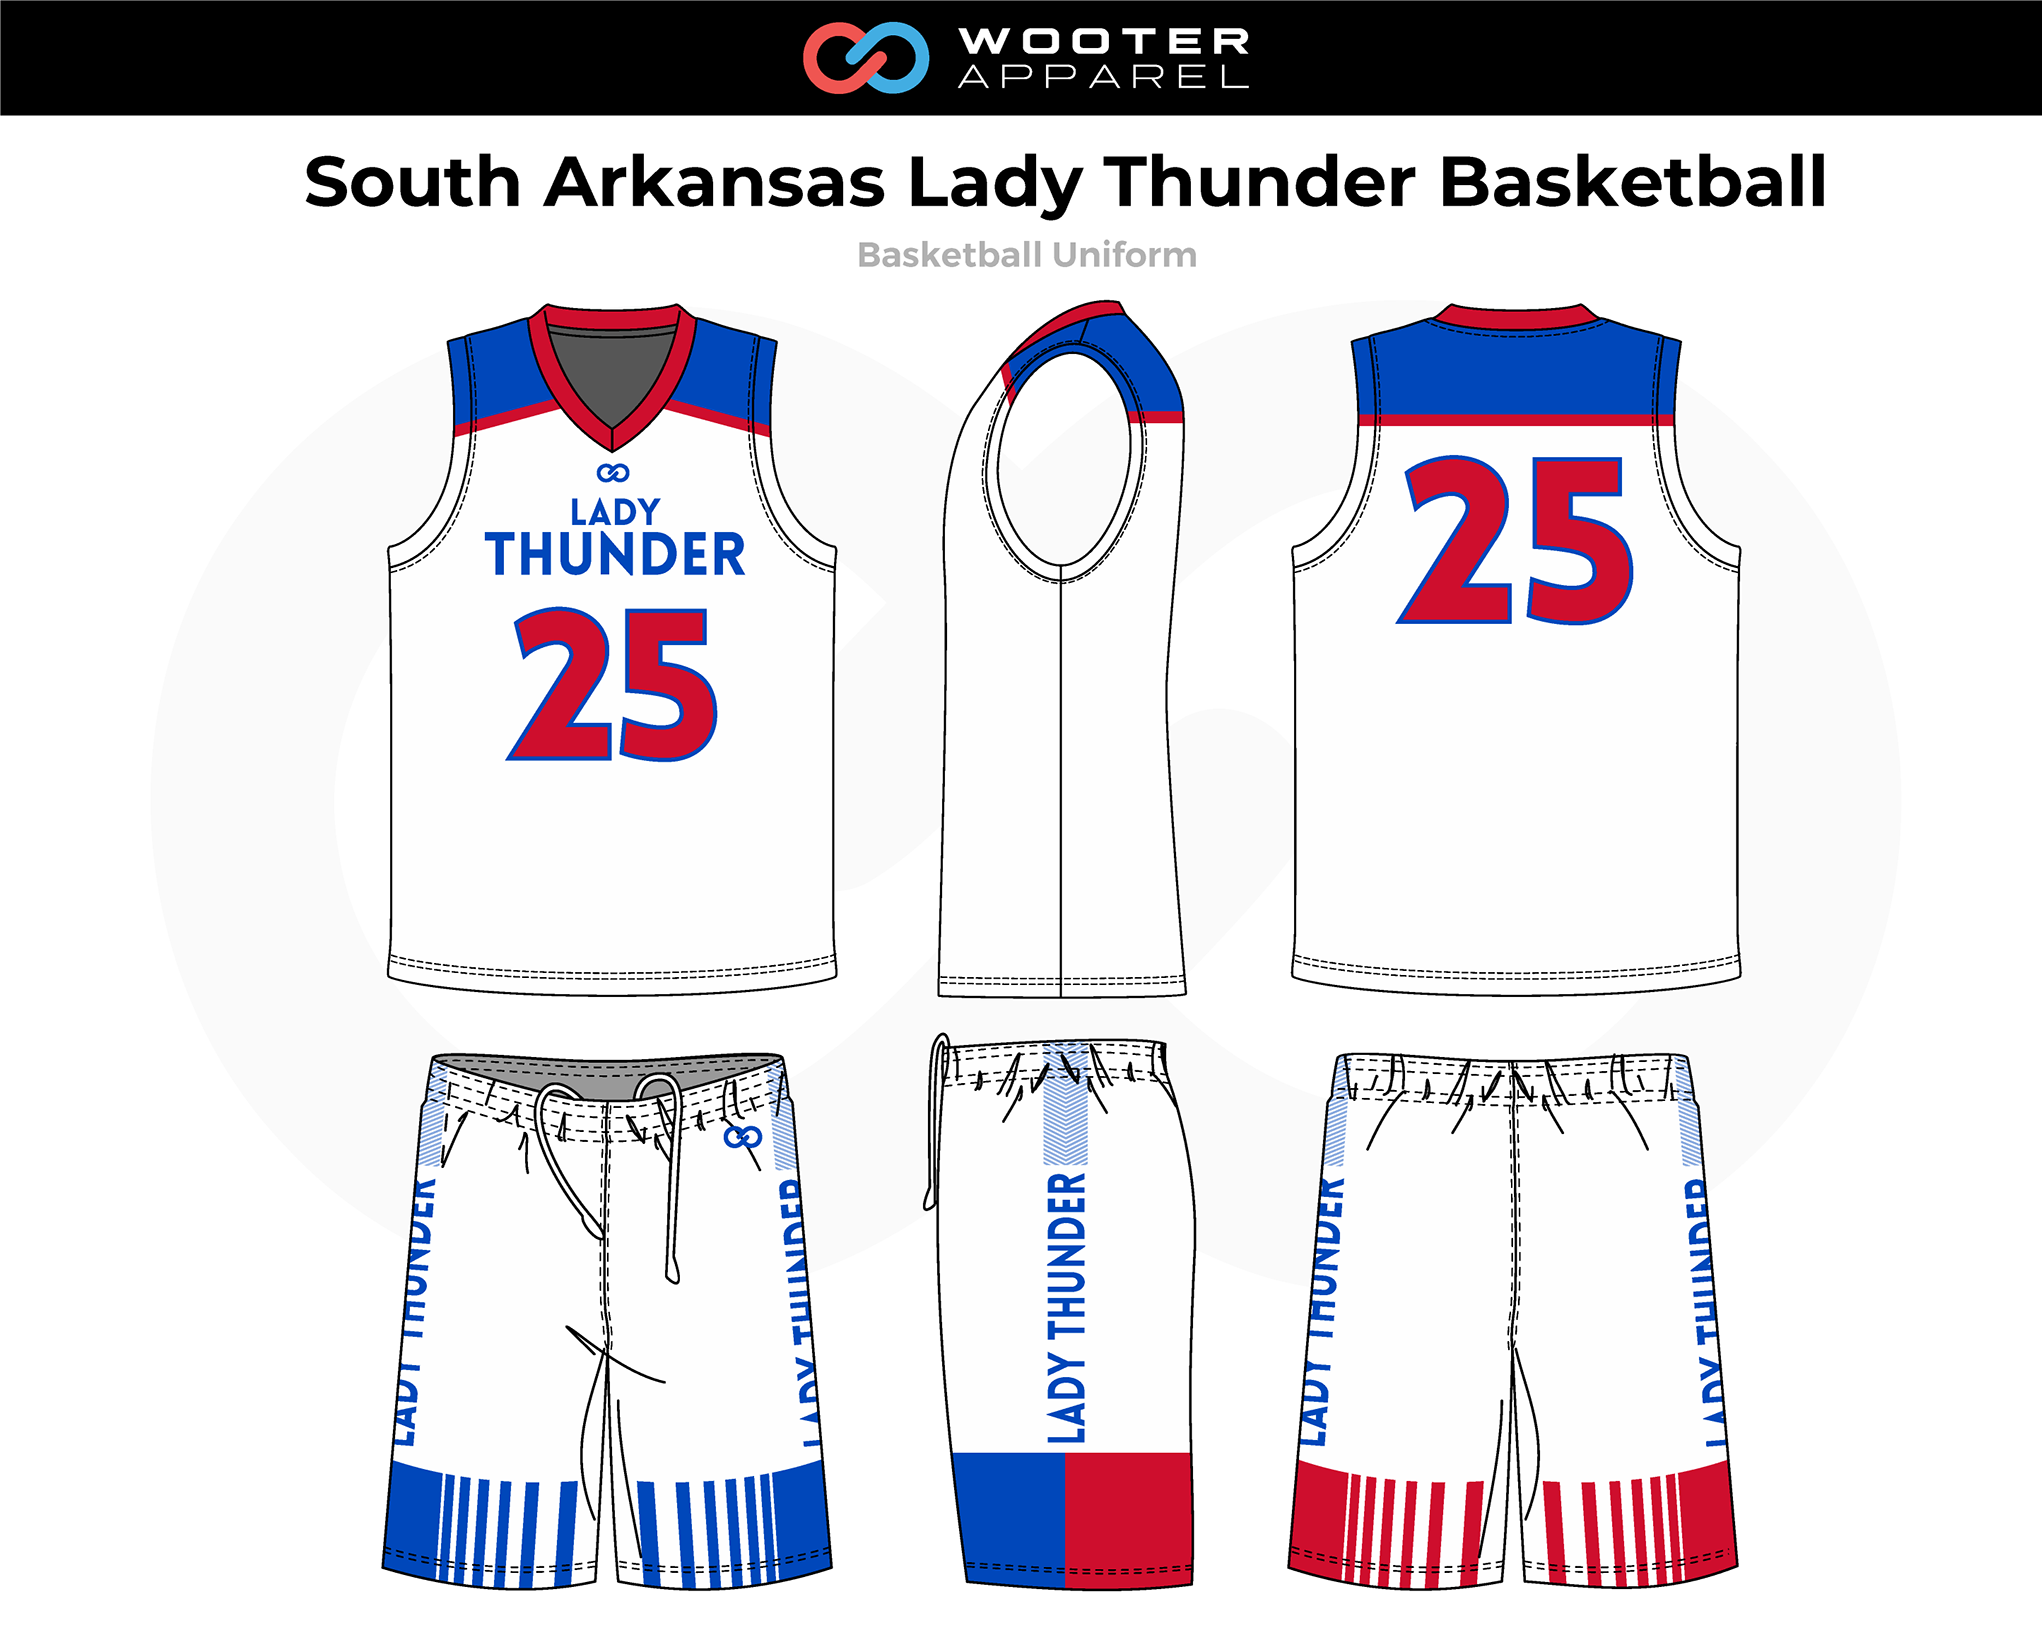 SOUTH ARKANSAS LADY THUNDER Blue White Red Basketball Uniform, Jersey and Shorts